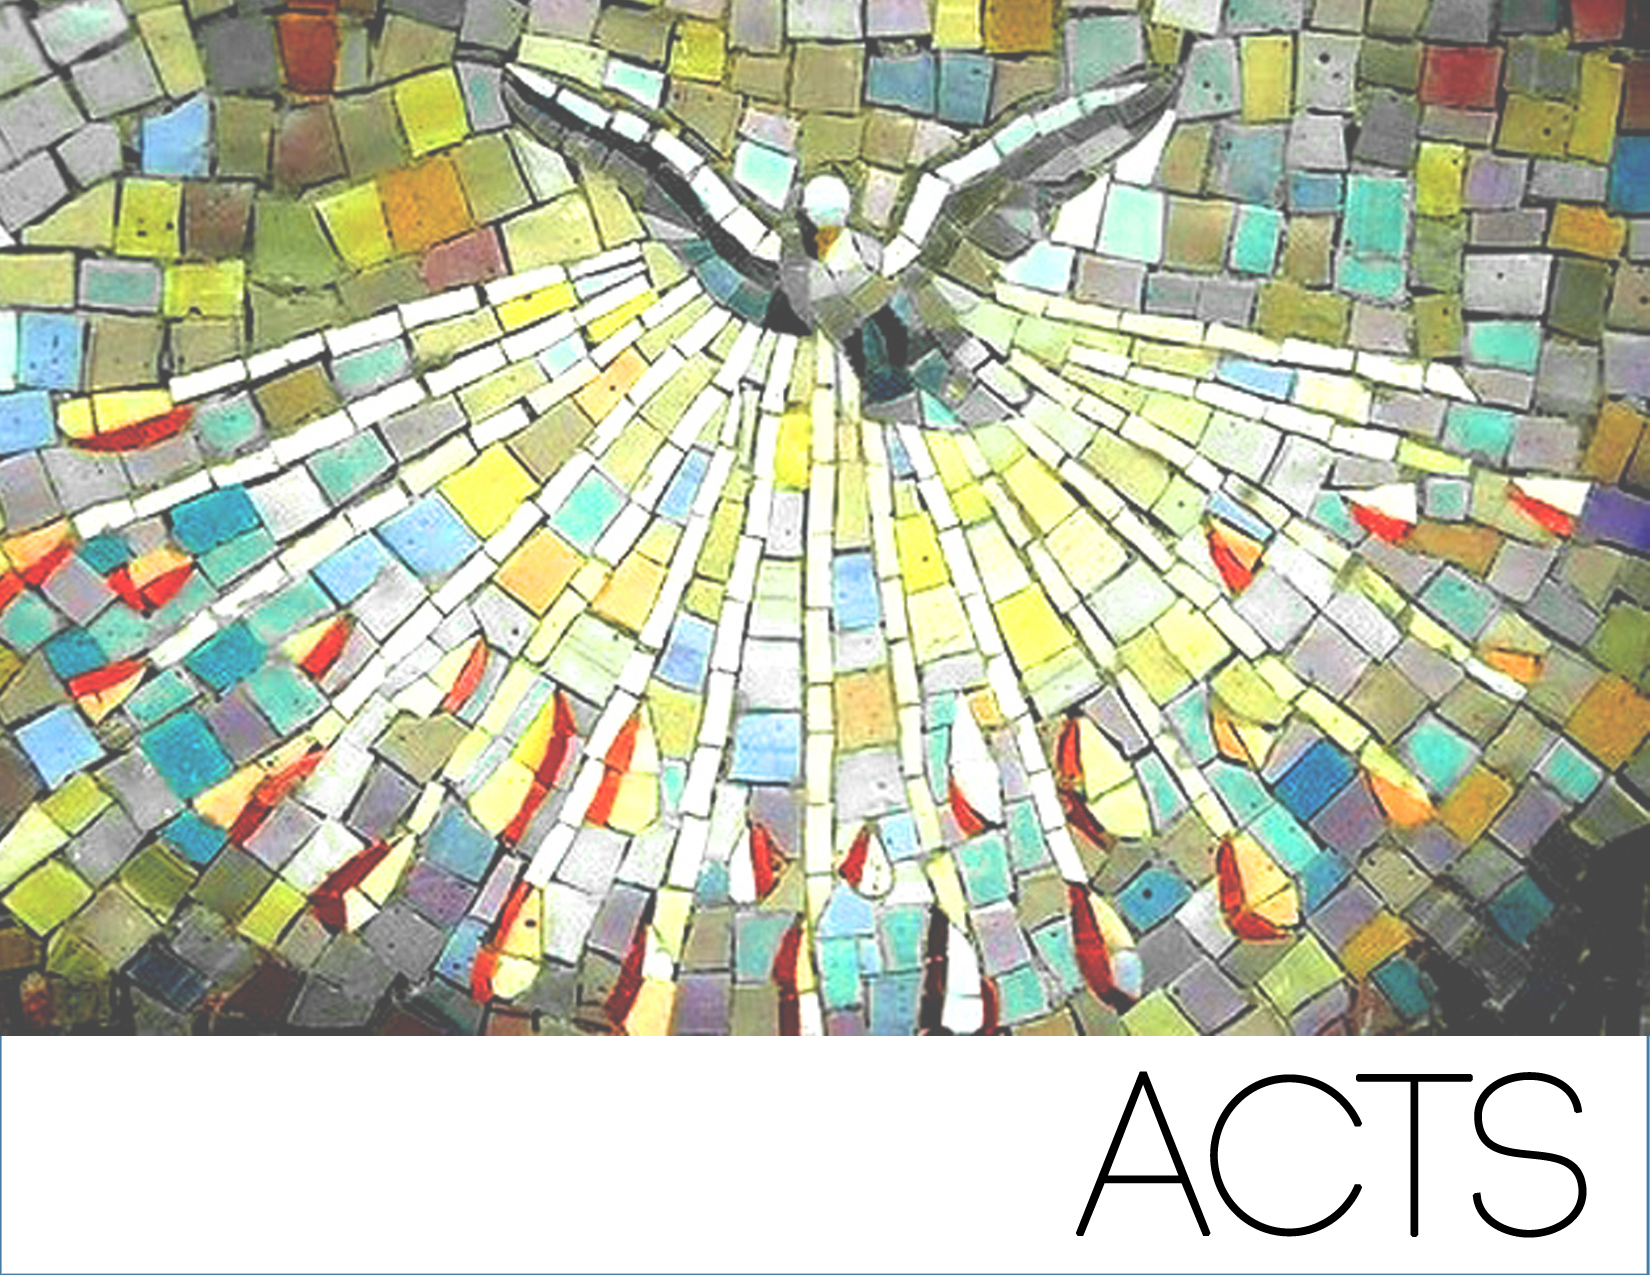 Acts 5 Part 2